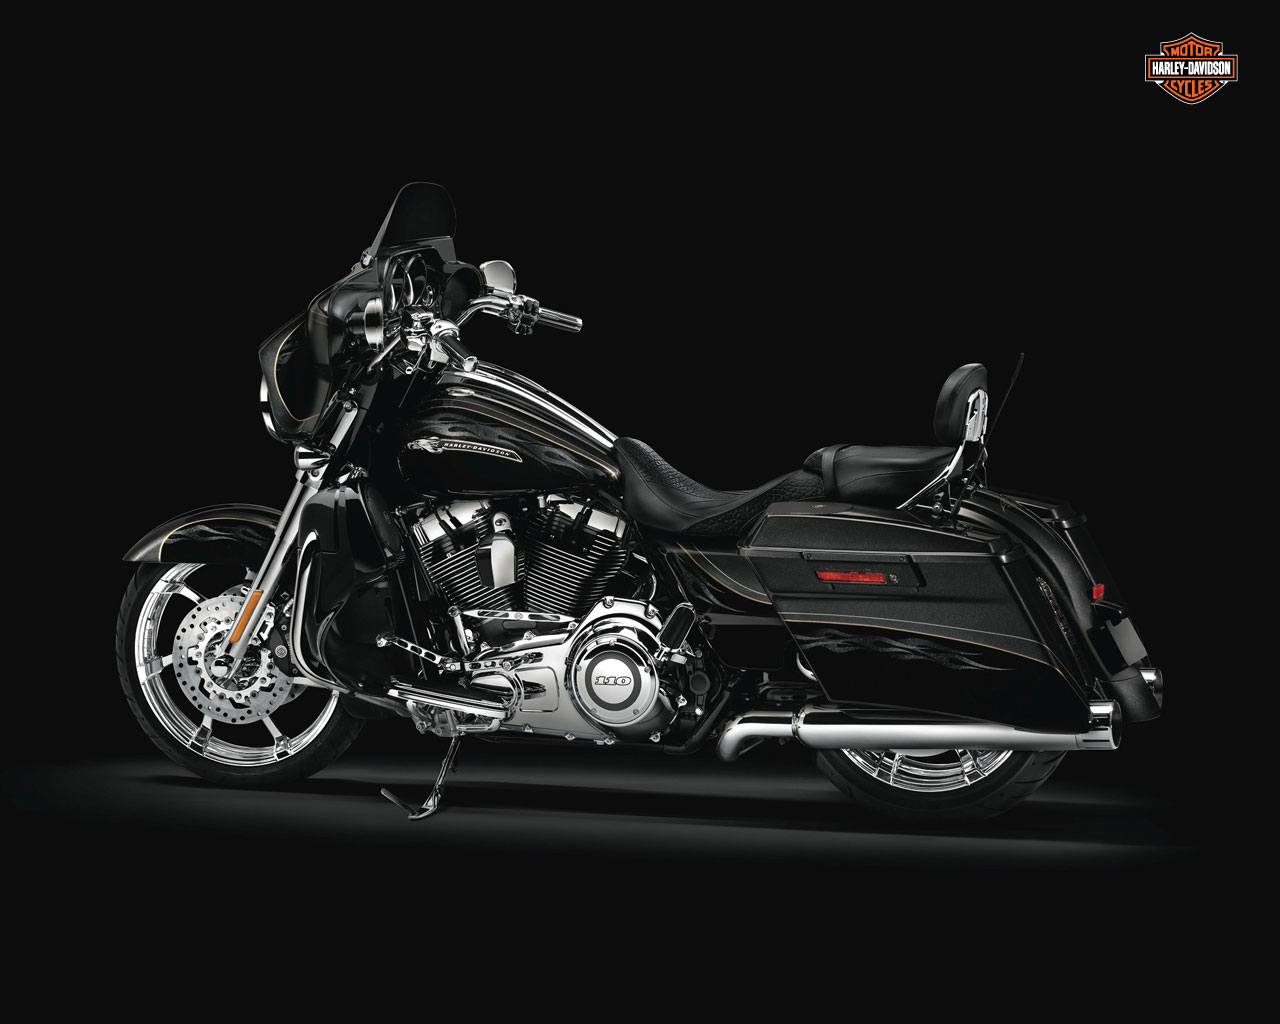 2012 Harley Davidson Flhxse3 Cvo Street Glide Review Touring Throttle By Wire Jumper Harness Heated Grip Wiring